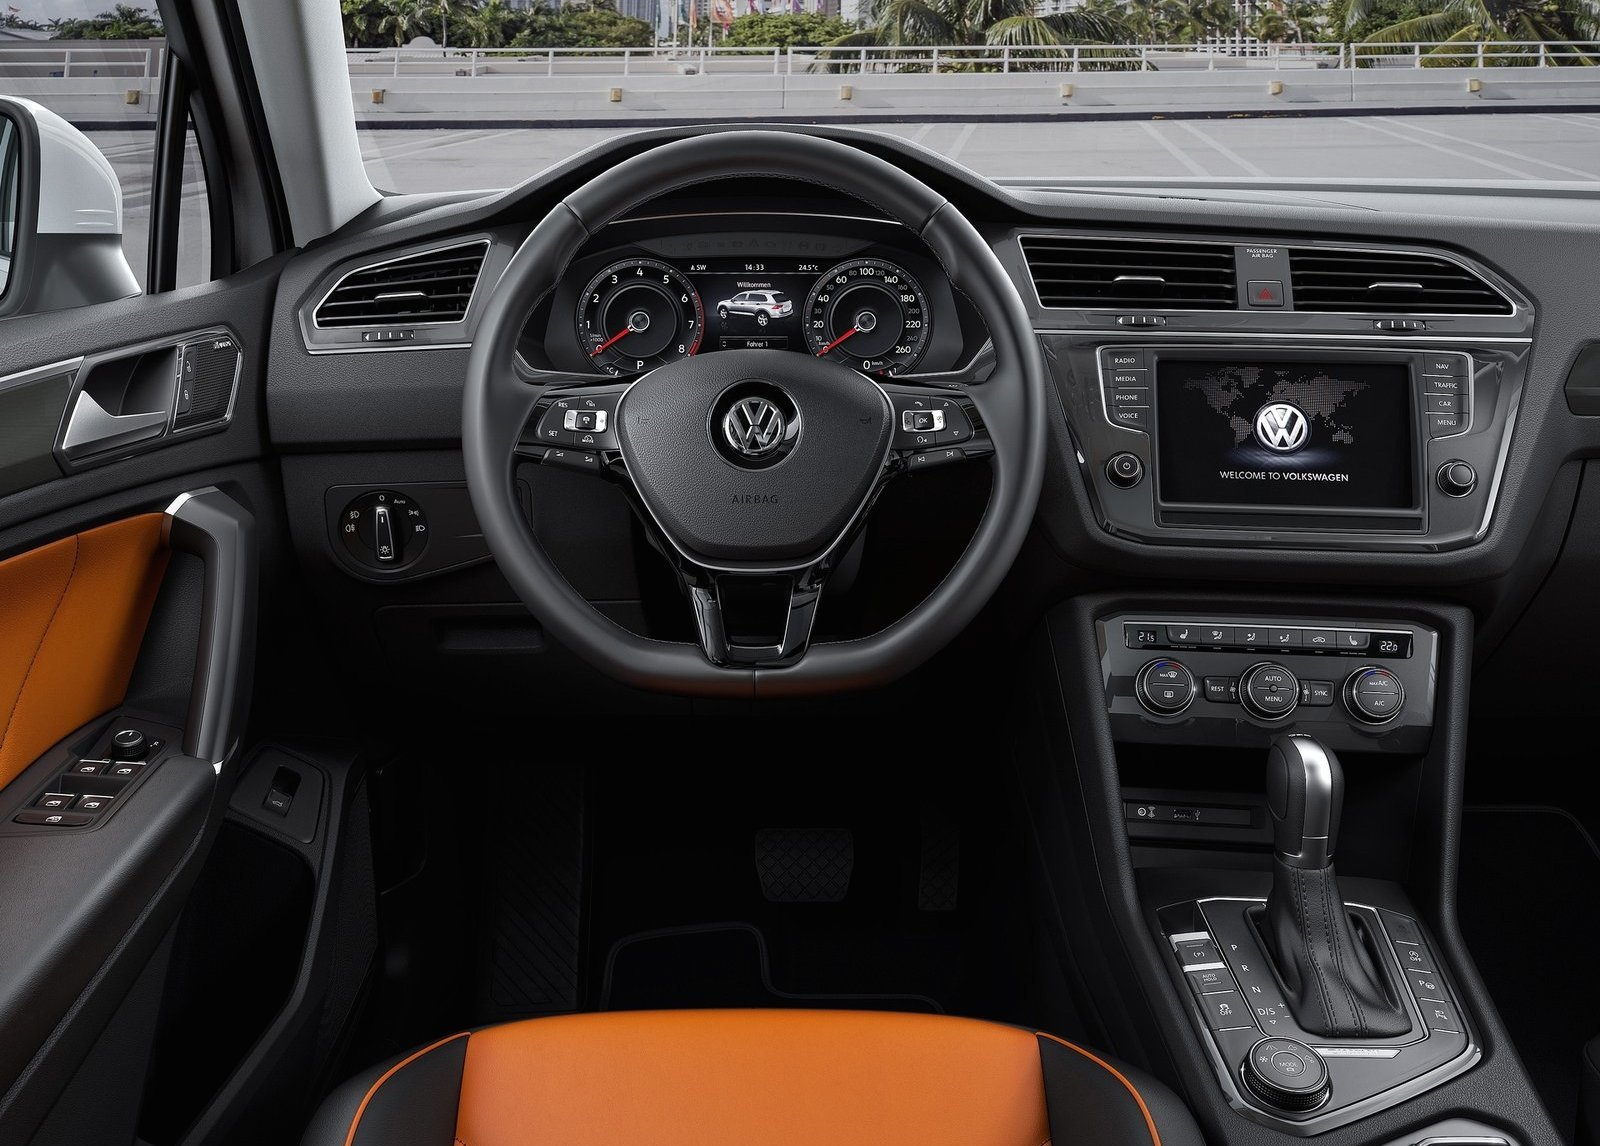 File Volkswagen Tiguan DC likewise Wallpaper 07 also Suv Vergleich Nissan Vw Skoda Hyundai Mazda 35315354 bild further Image001 178 as well Ice Road Truckers Opening Of The Icy Canadian Highways Pictures 0. on 2018 tiguan